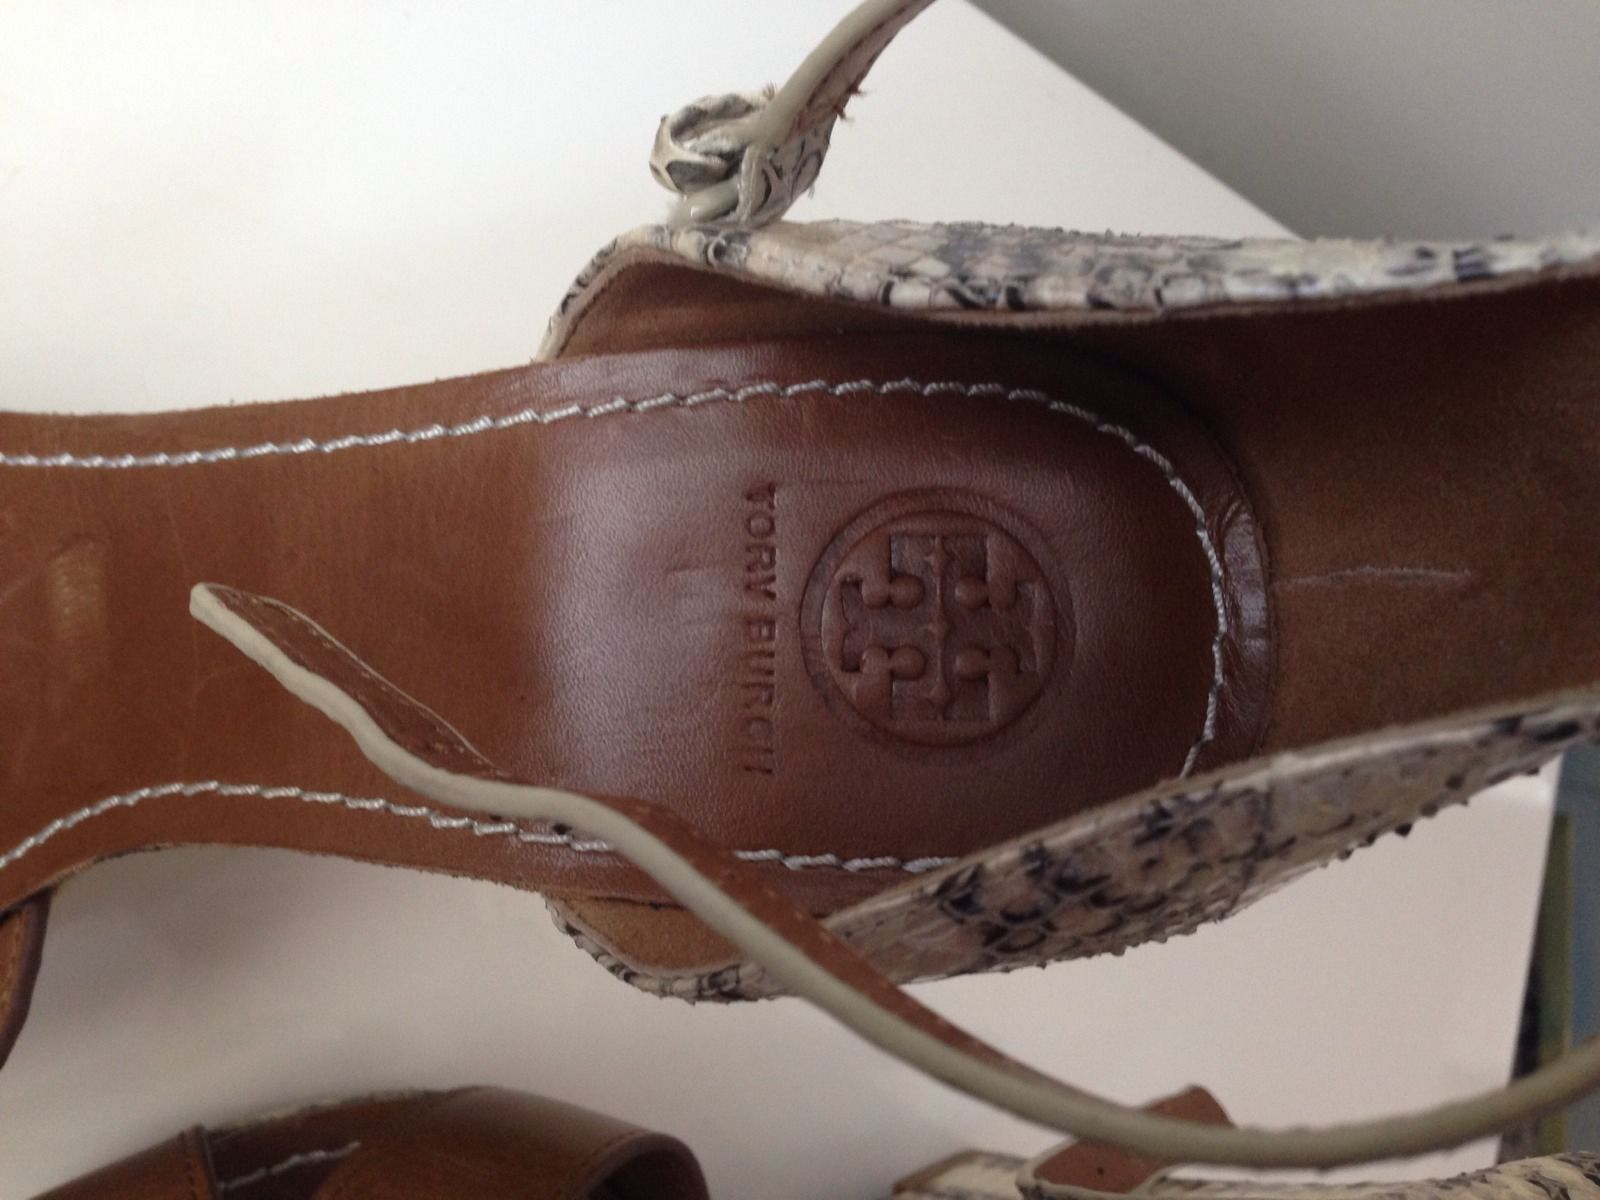 TORY BURCH LIVIA SNAKE WEDGE SANDAL - NEW - SIZE US 9.5 M